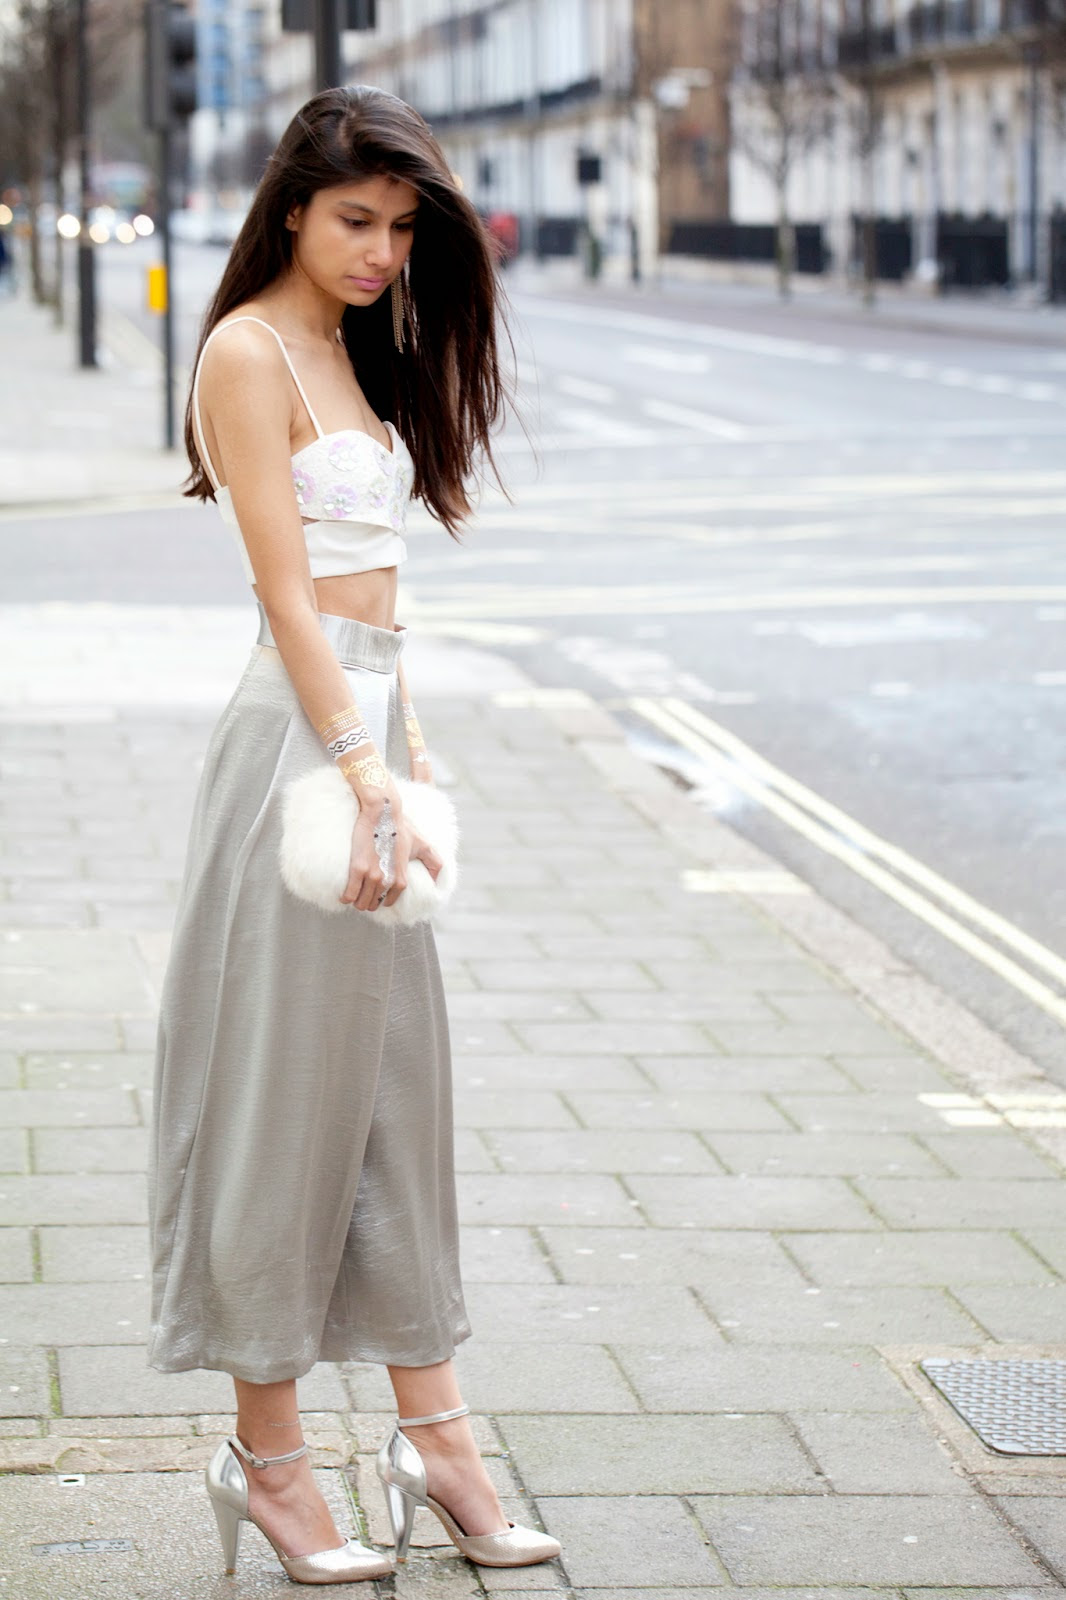 culottes  crop top outfit ideas  outfit ideas hq